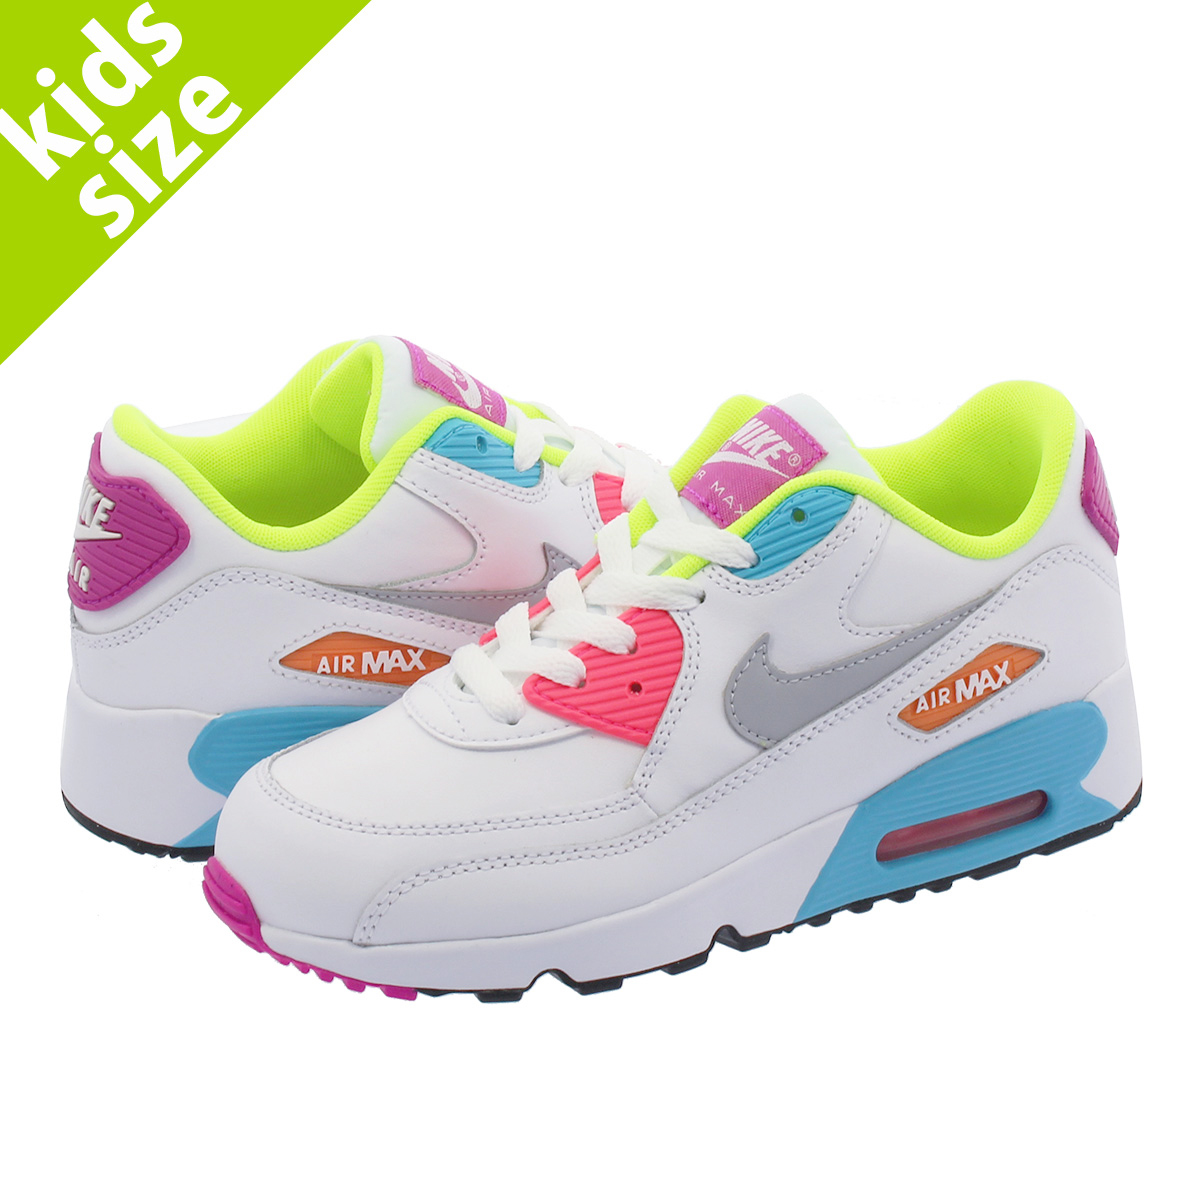 low priced 8cfa7 1976b ... coupon code nike air max 90 leather ps kie ney amax 90 leather ps white  lime